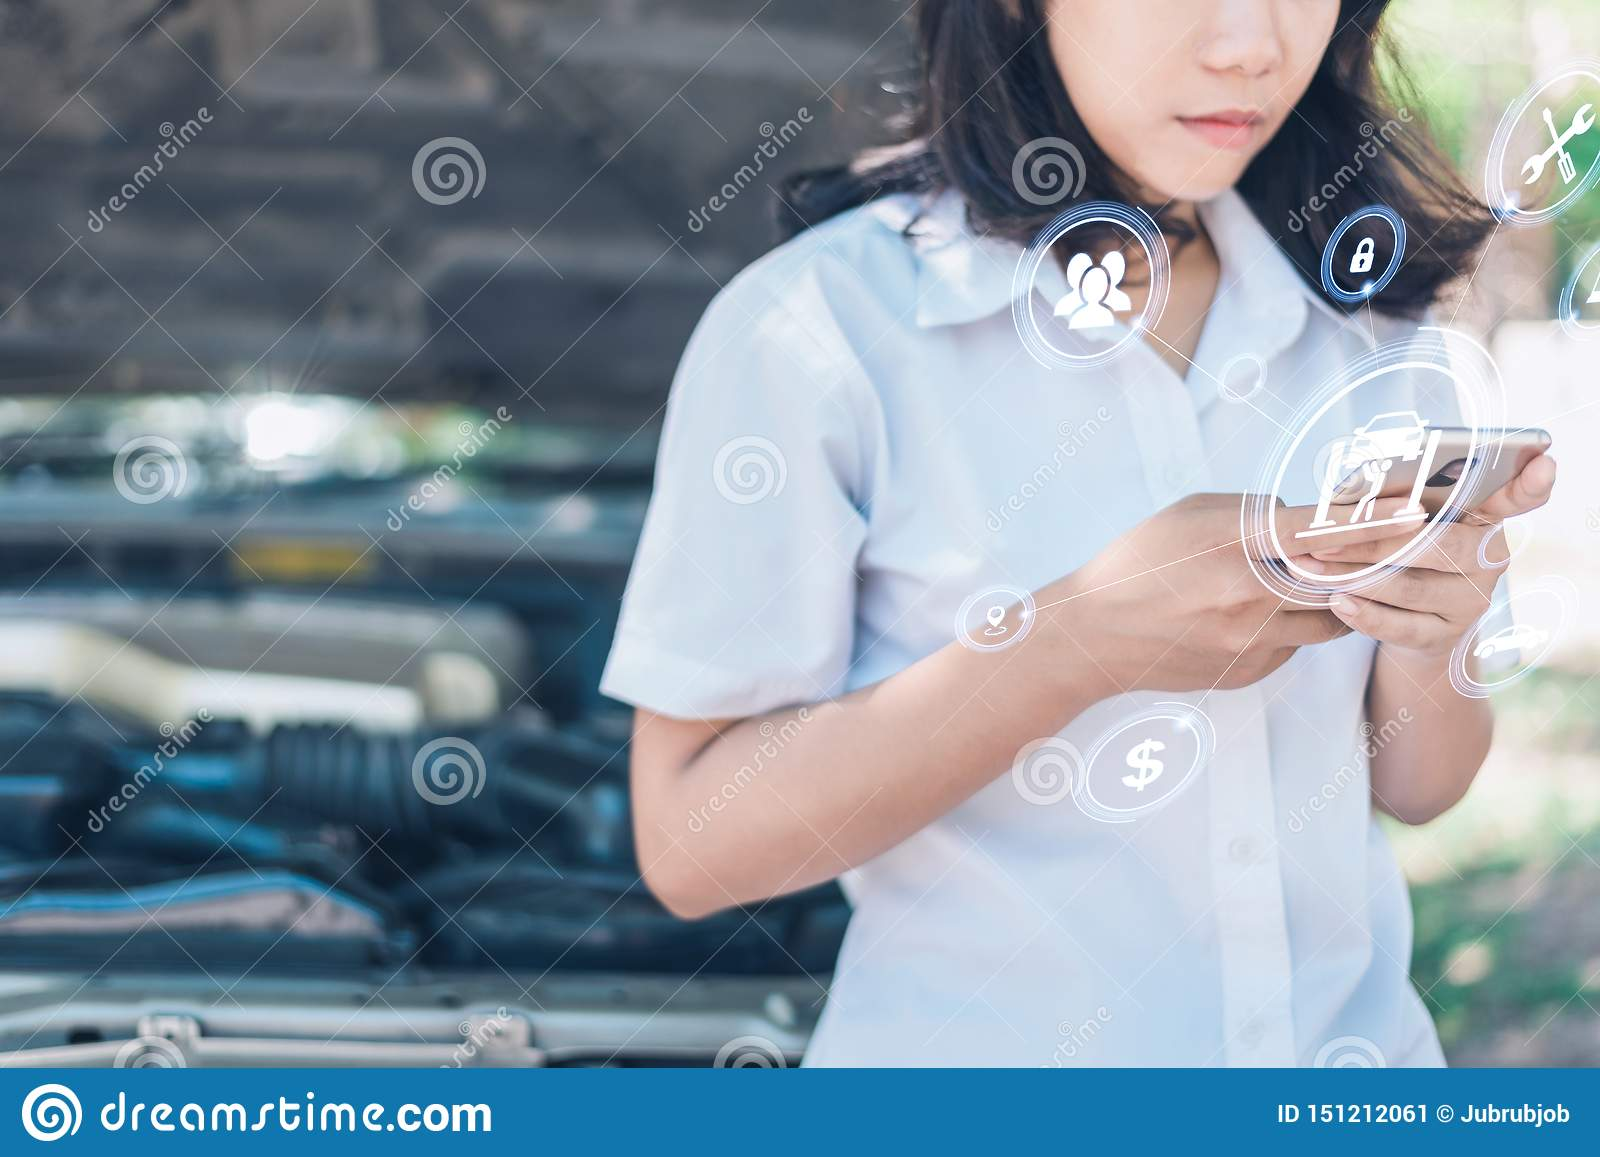 The abstract image of business man point to the hologram on his smartphone and blurred car engine room is backdrop. the concept of